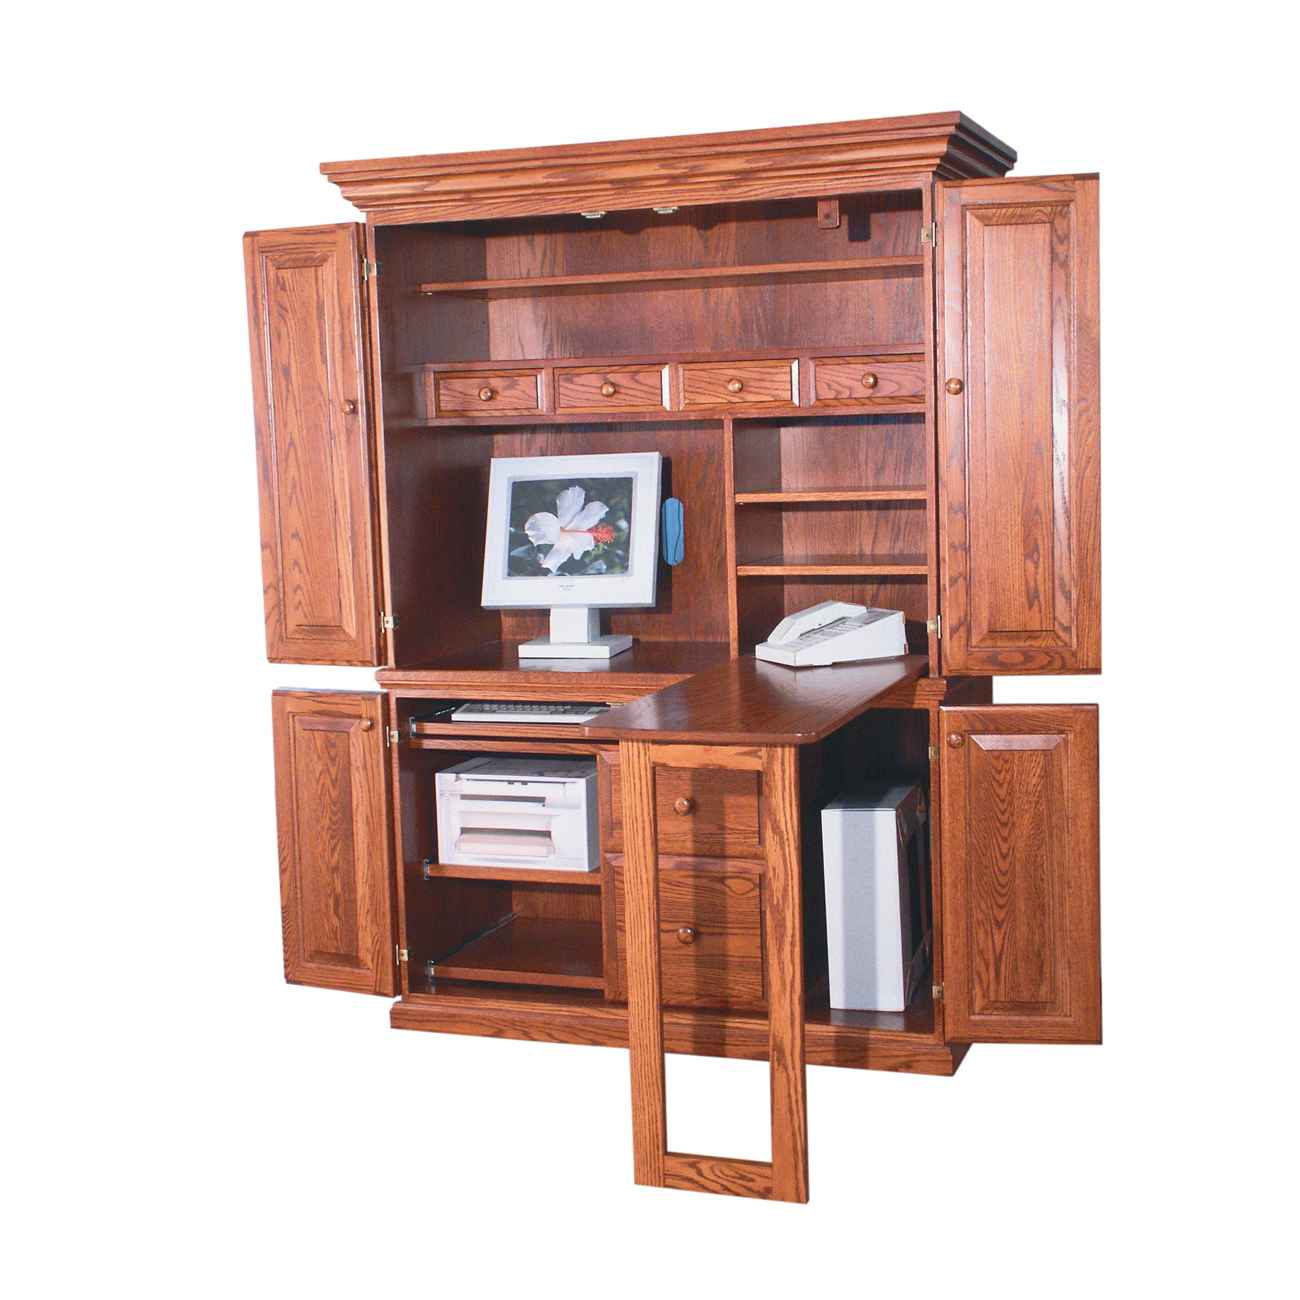 Image of: Wooden desk armoire